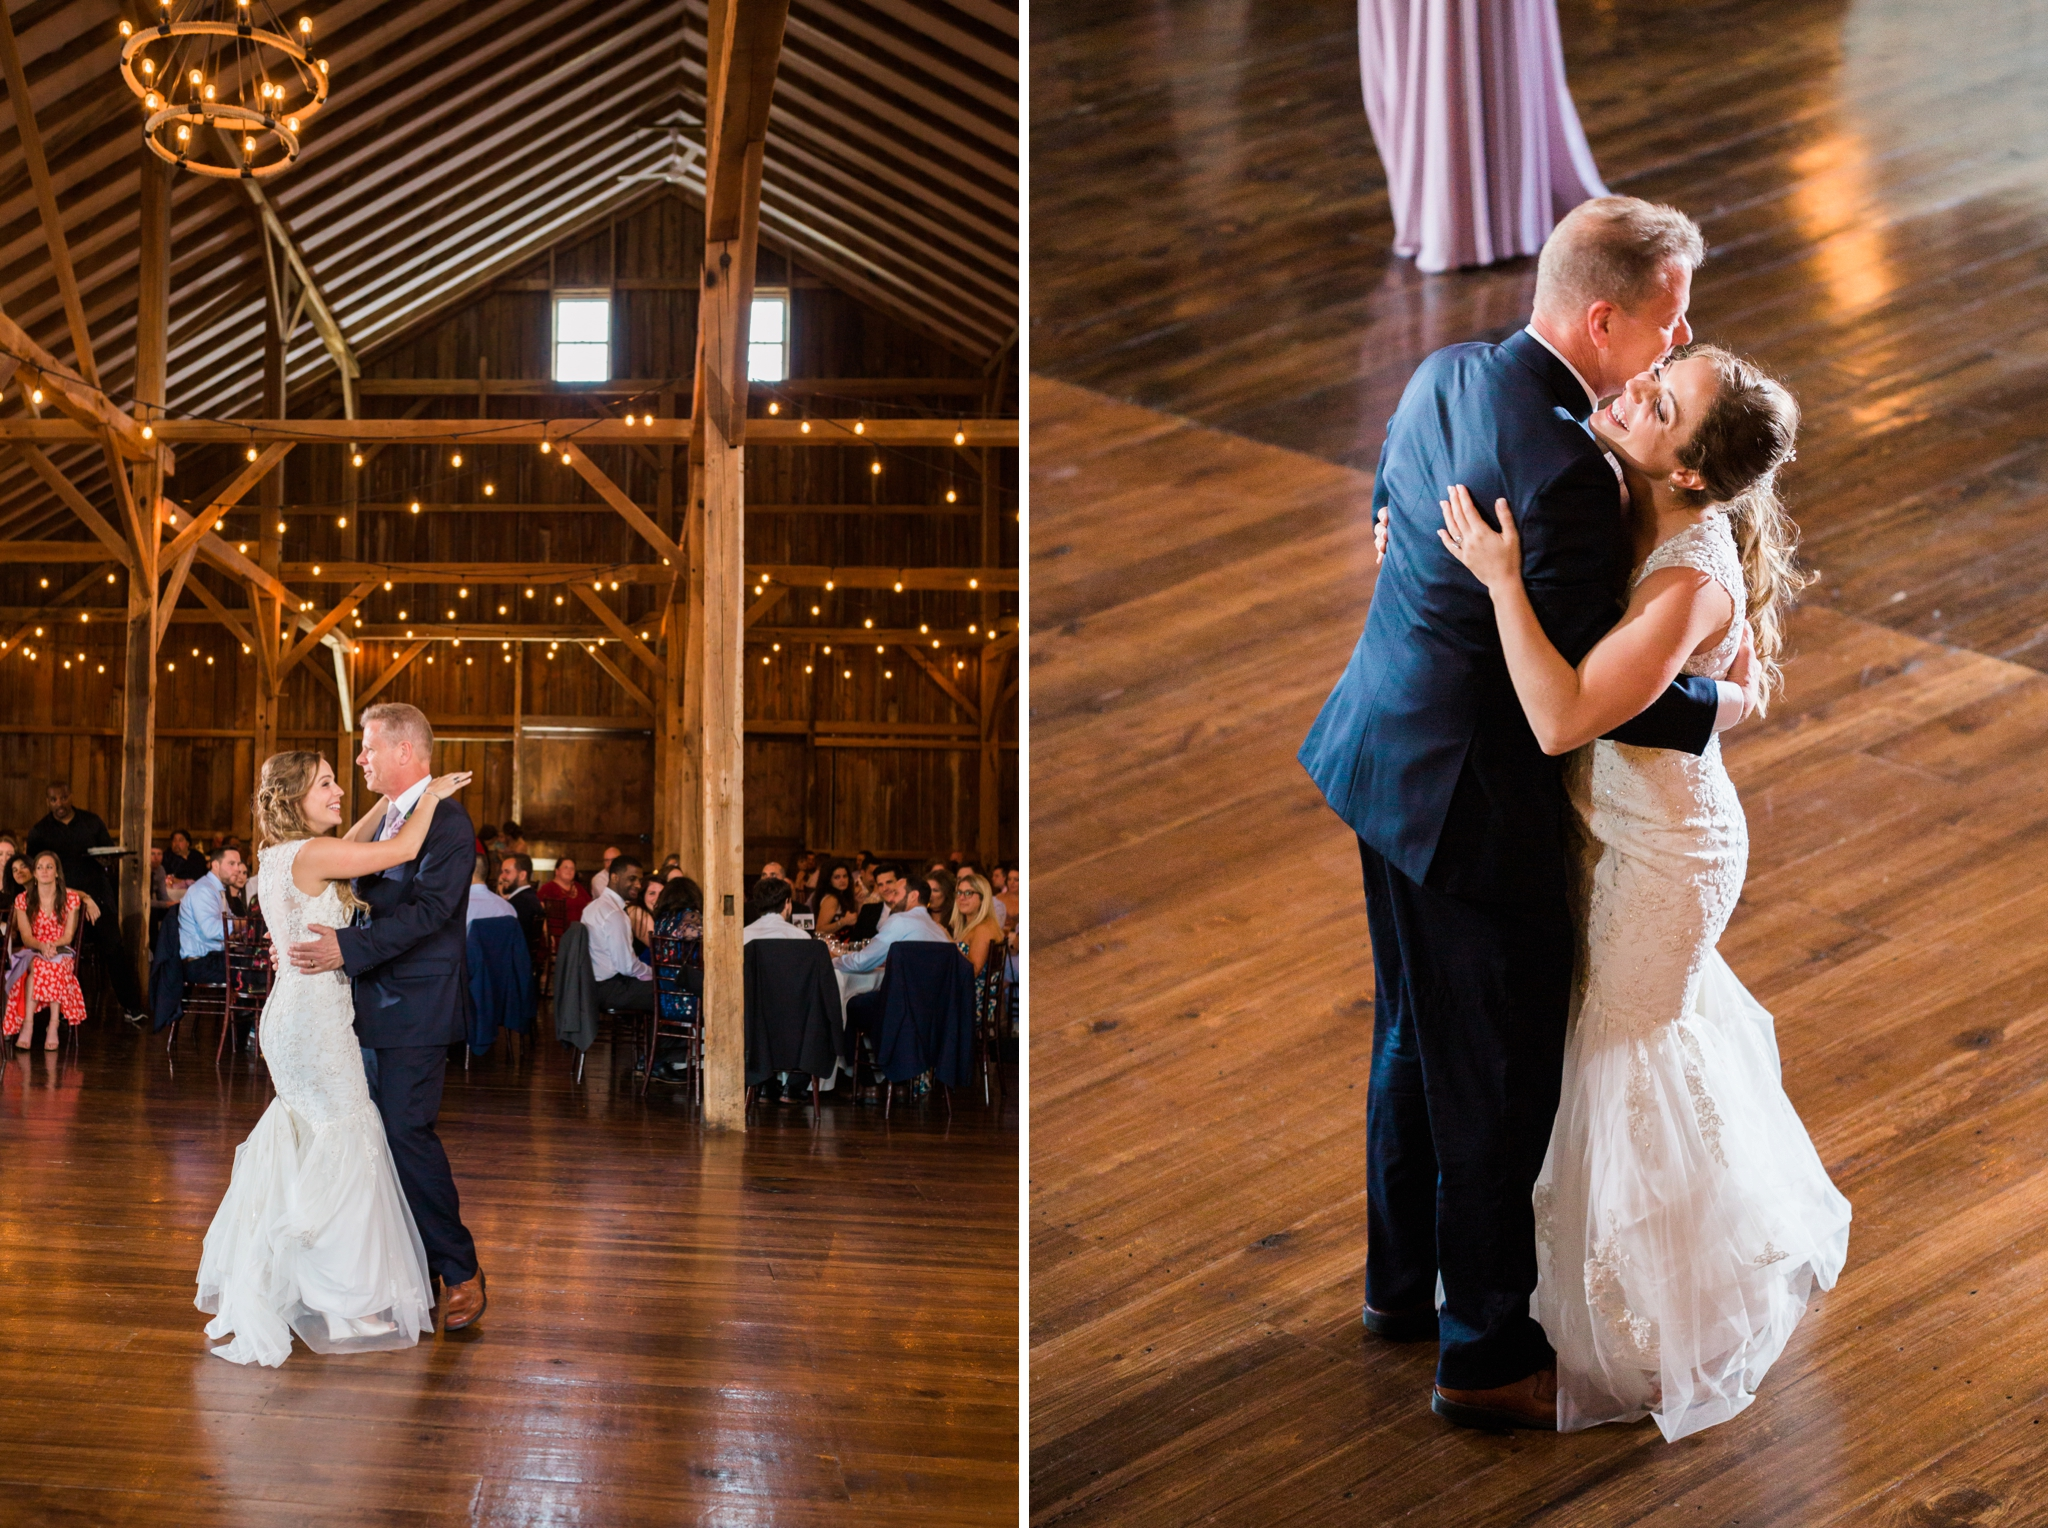 Emily Grace Photography, Lancaster PA Wedding Photographer for Non-Traditional Couples, The Barn at Stoneybrooke, Barn Wedding Venue, Lancaster PA Wedding Venue, Central PA Wedding Photographer